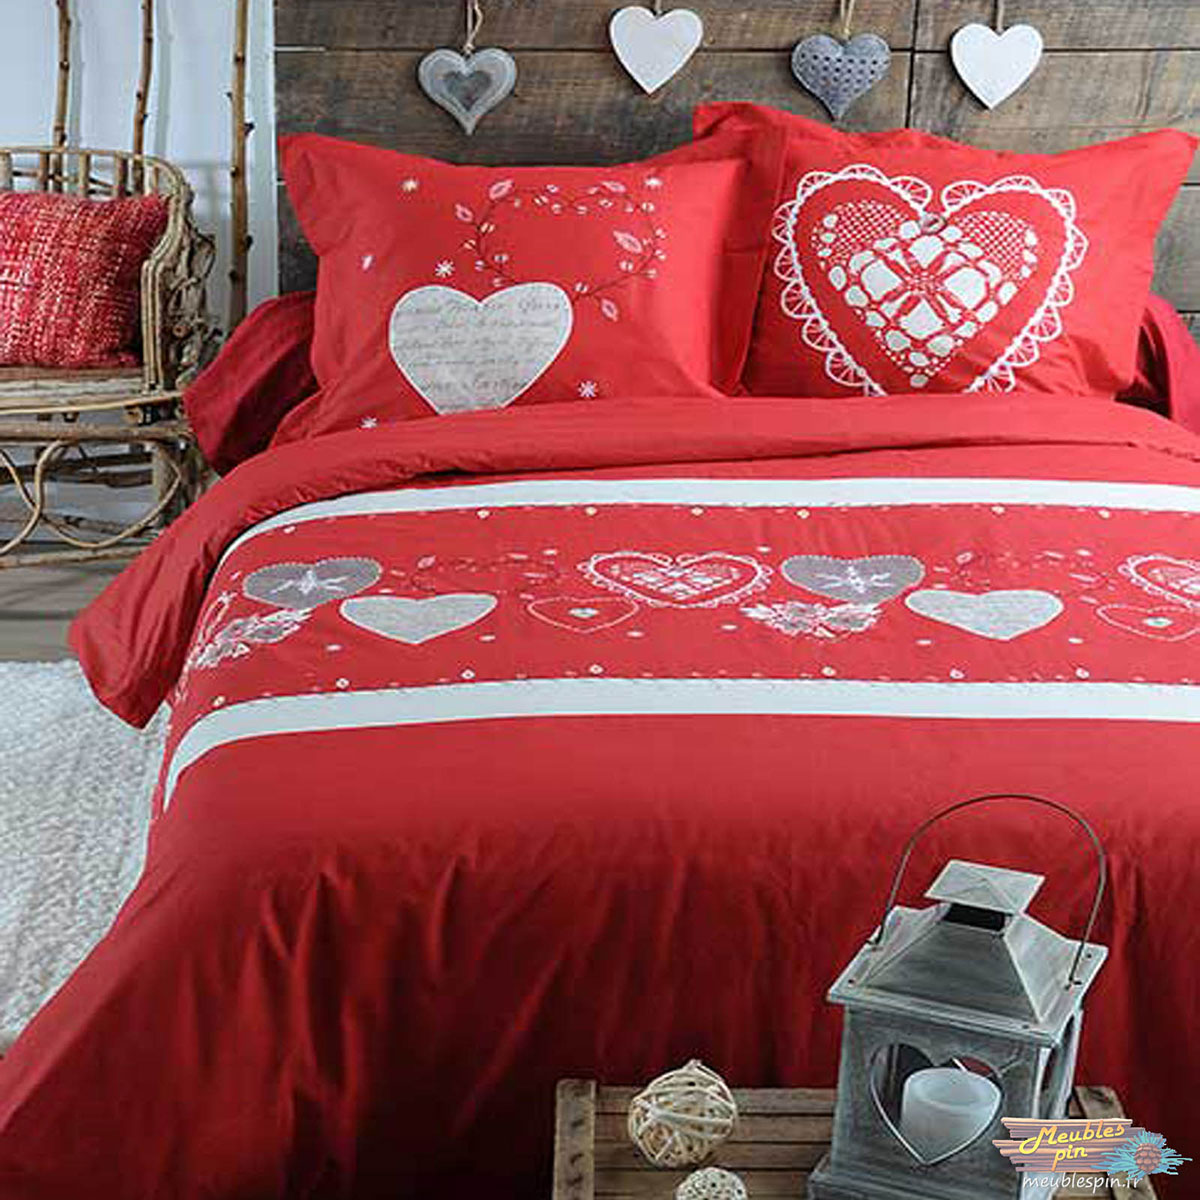 parure de lit montagnarde et romantique rouge homemaison vente en ligne parures de lit. Black Bedroom Furniture Sets. Home Design Ideas